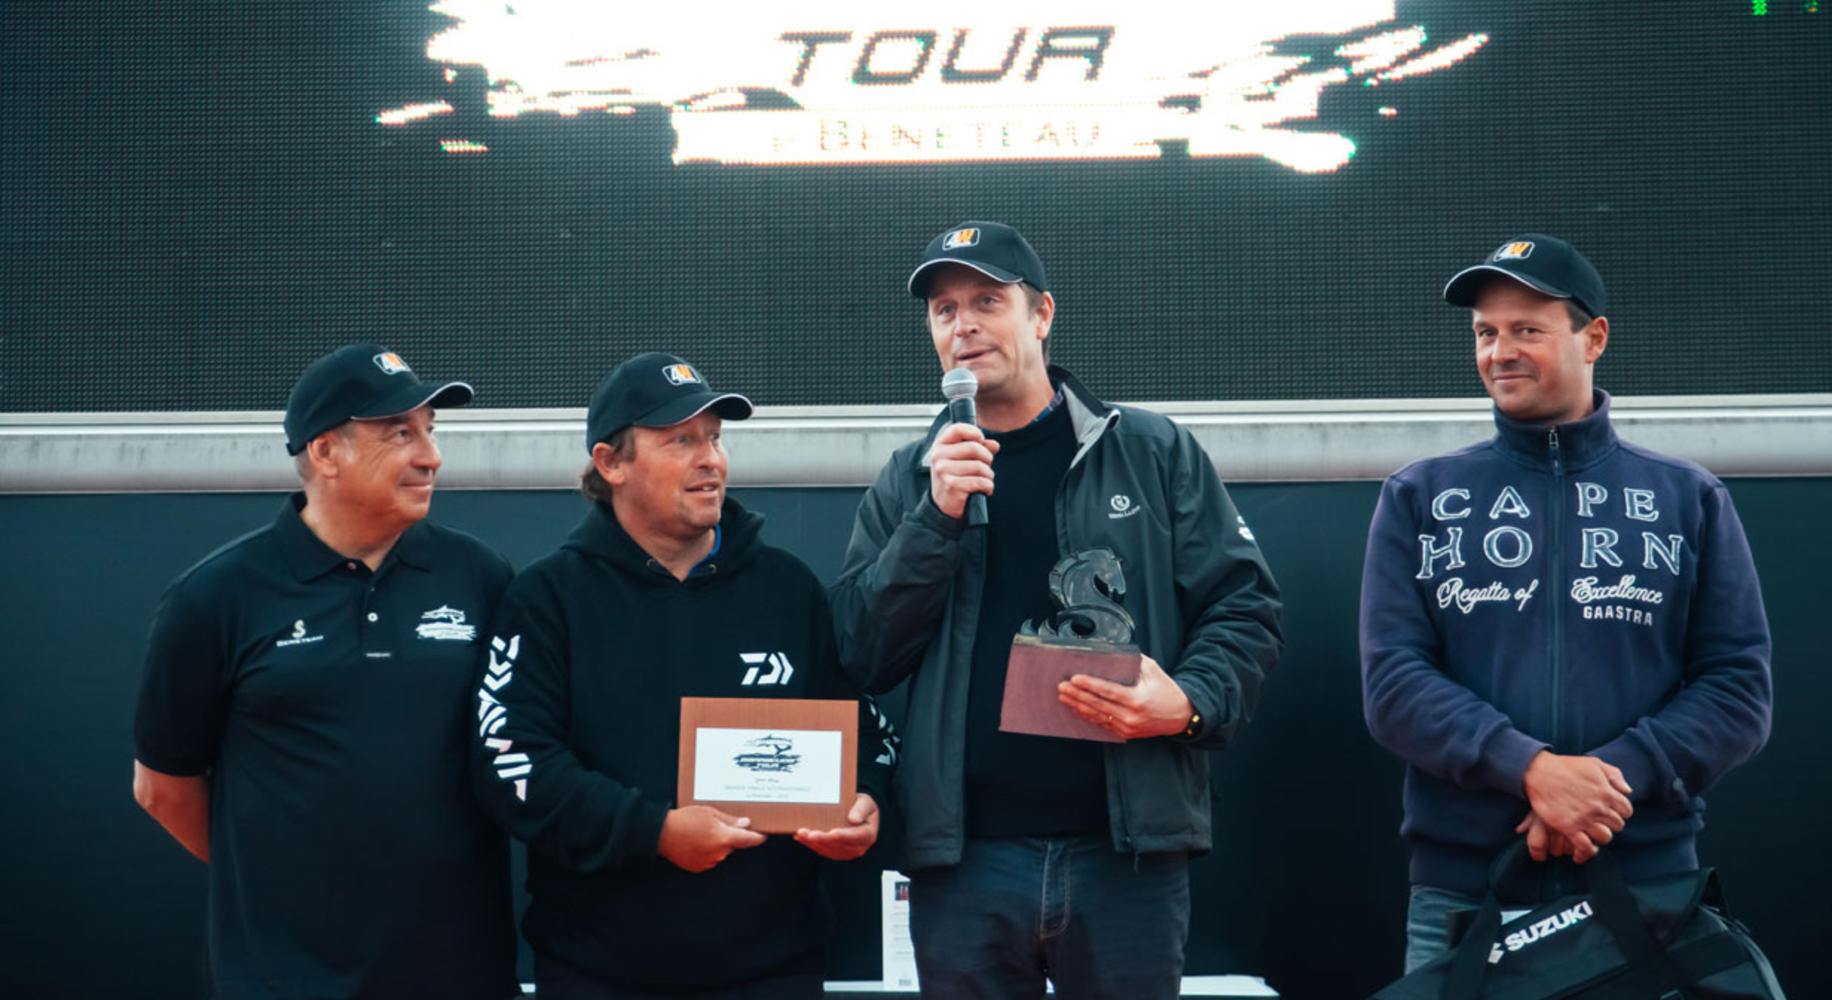 Barracuda Tour la grande Finale